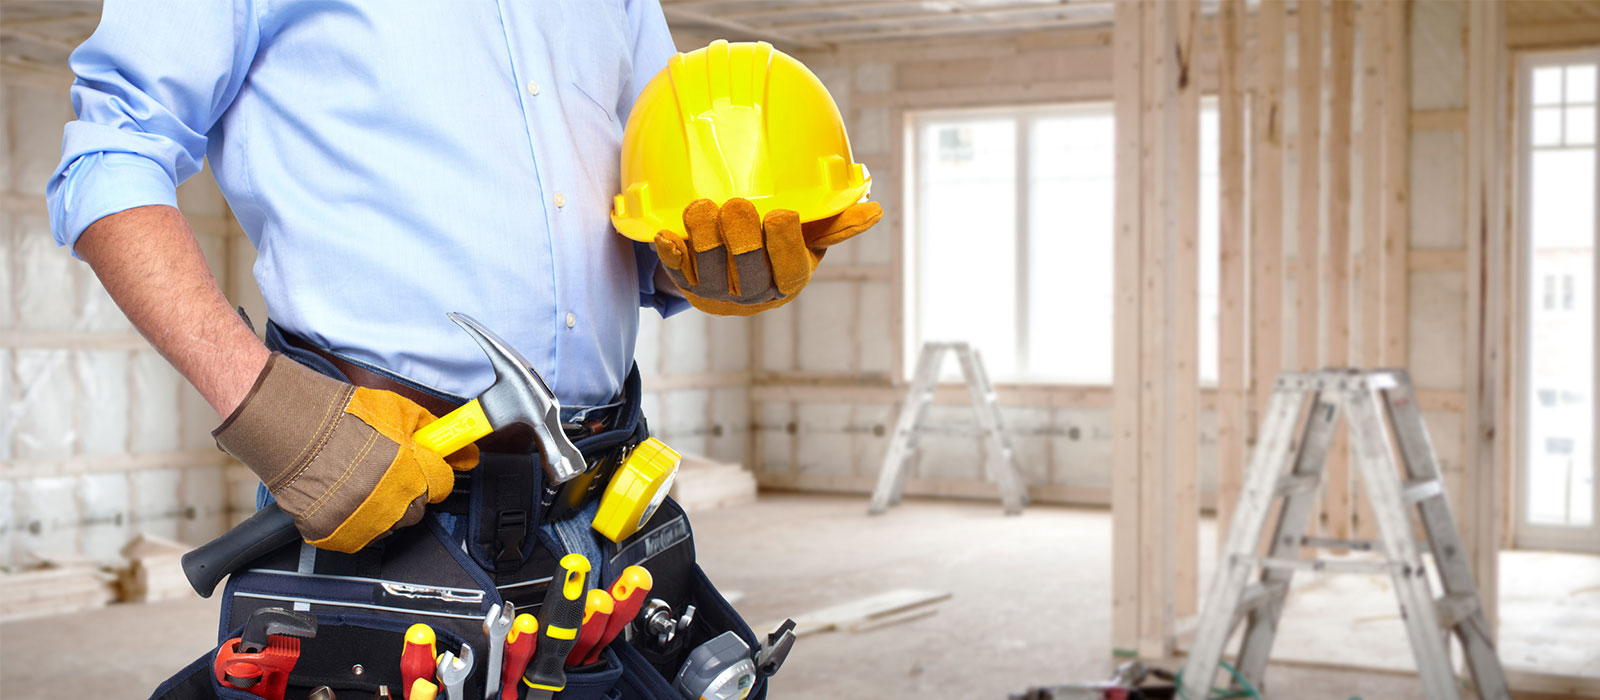 We sell affordable handyman insurance - Handyman Image